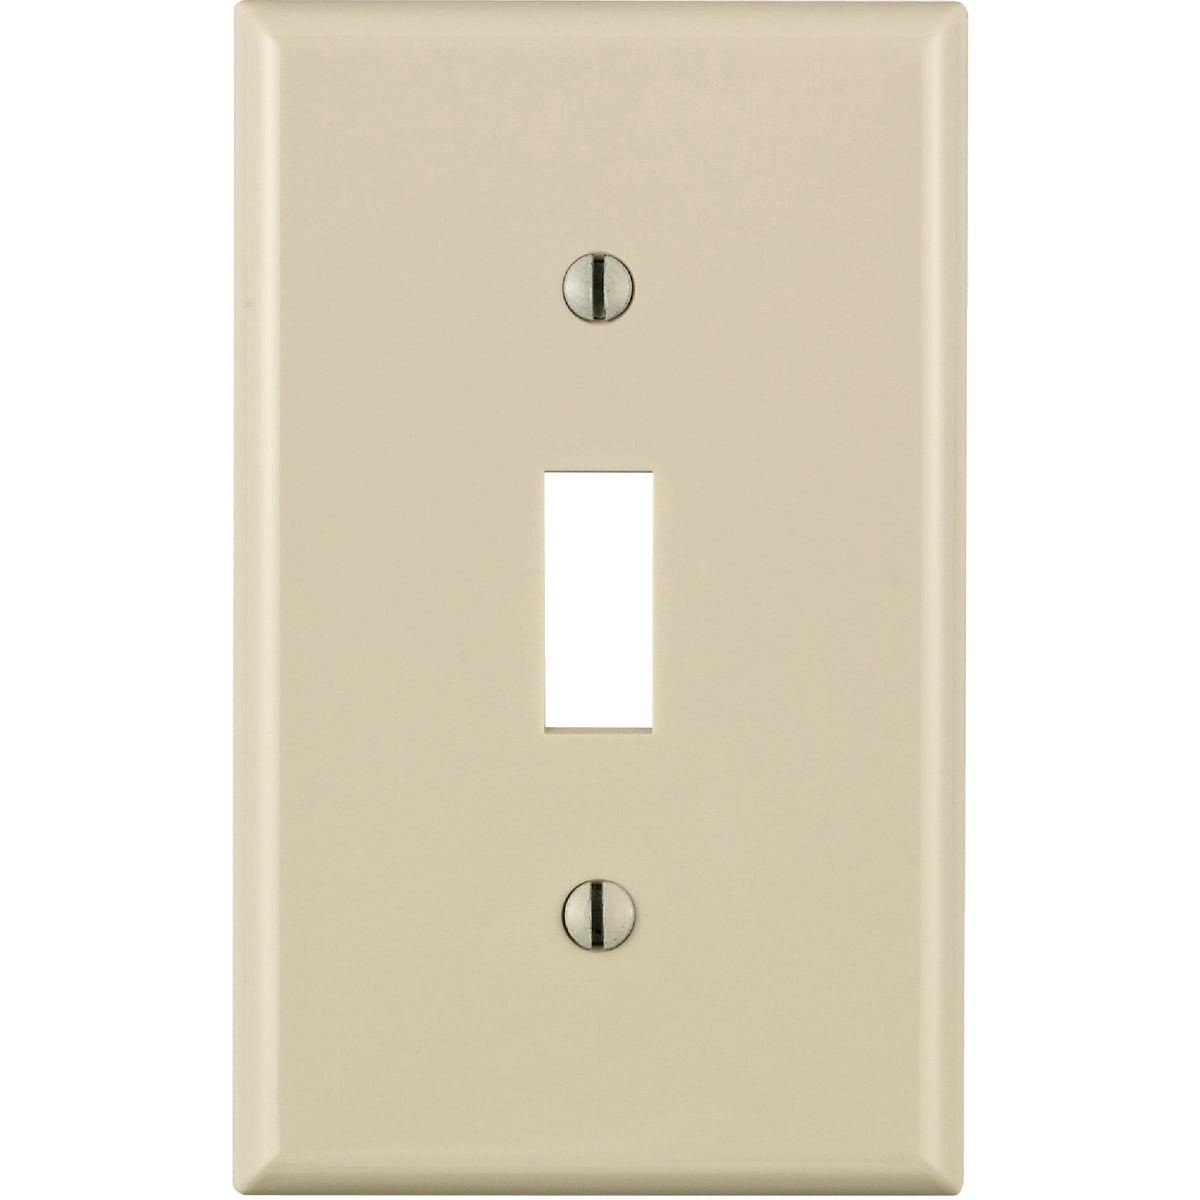 LT ALM 1 TGL WALLPLATE - 024-80701-OOT by Leviton Mfg Co